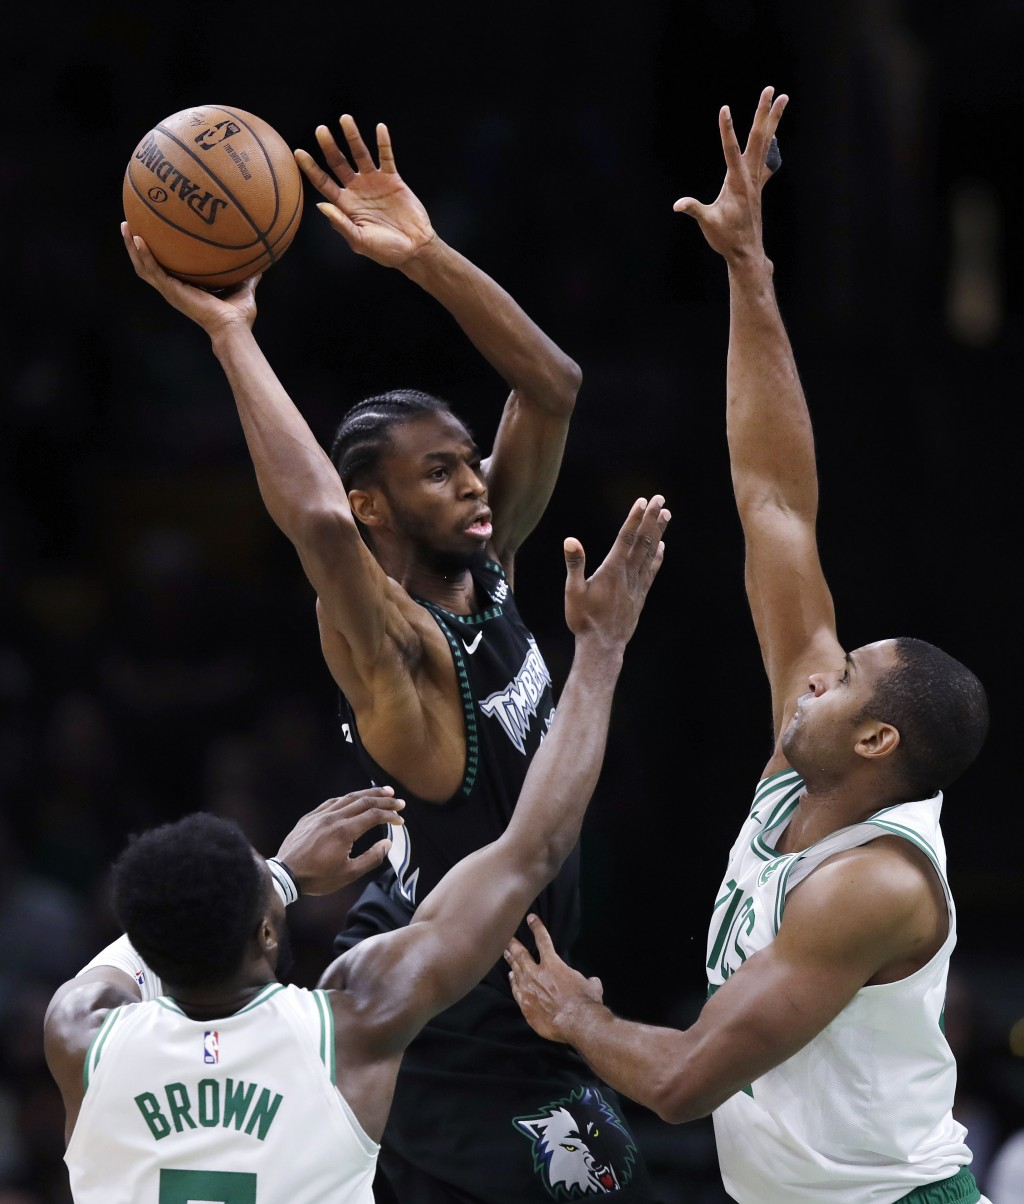 Minnesota Timberwolves forward Andrew Wiggins, center, looks to pass the ball as Boston Celtics center Al Horford, right, and guard Jaylen Brown (7) d